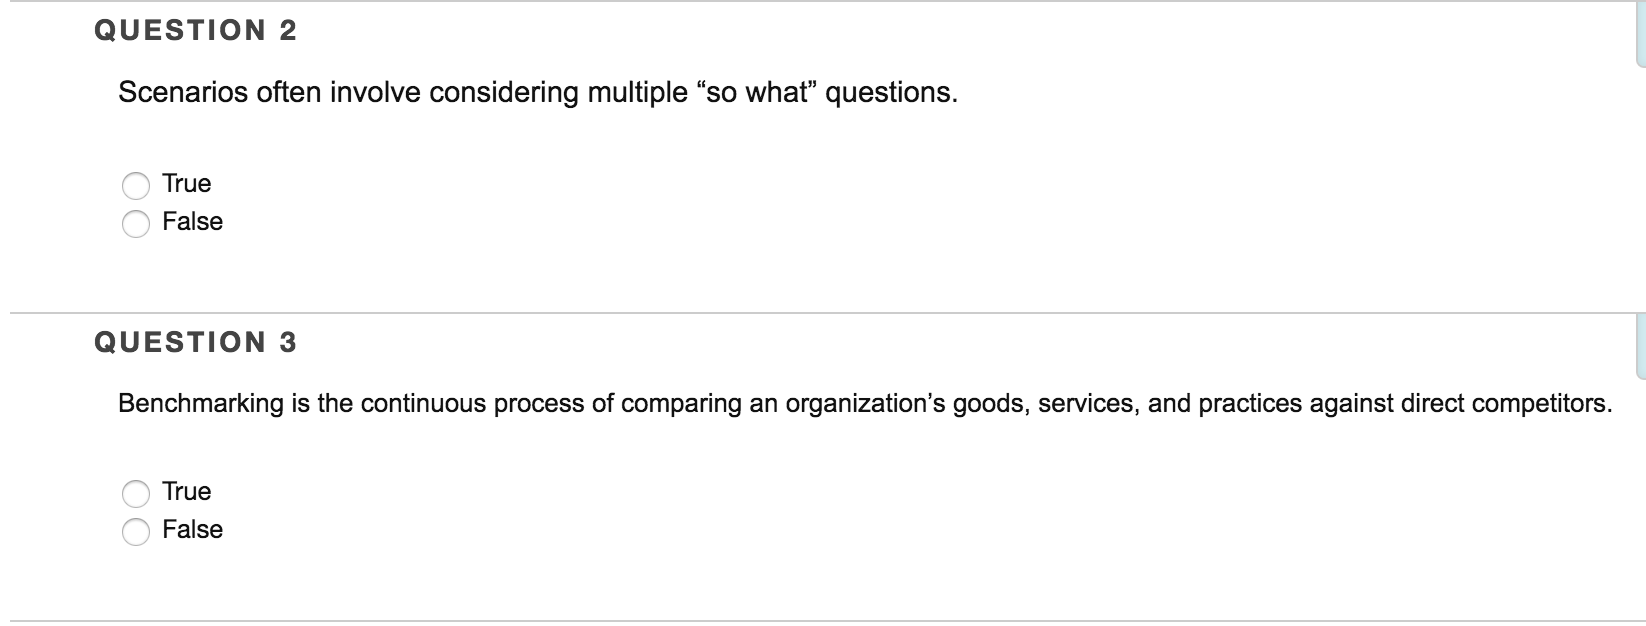 operations management archive 07 2016 chegg com scenarios often involve considering multiple so what questions true false benchmarking is the continuous process of comparing an organization s goods